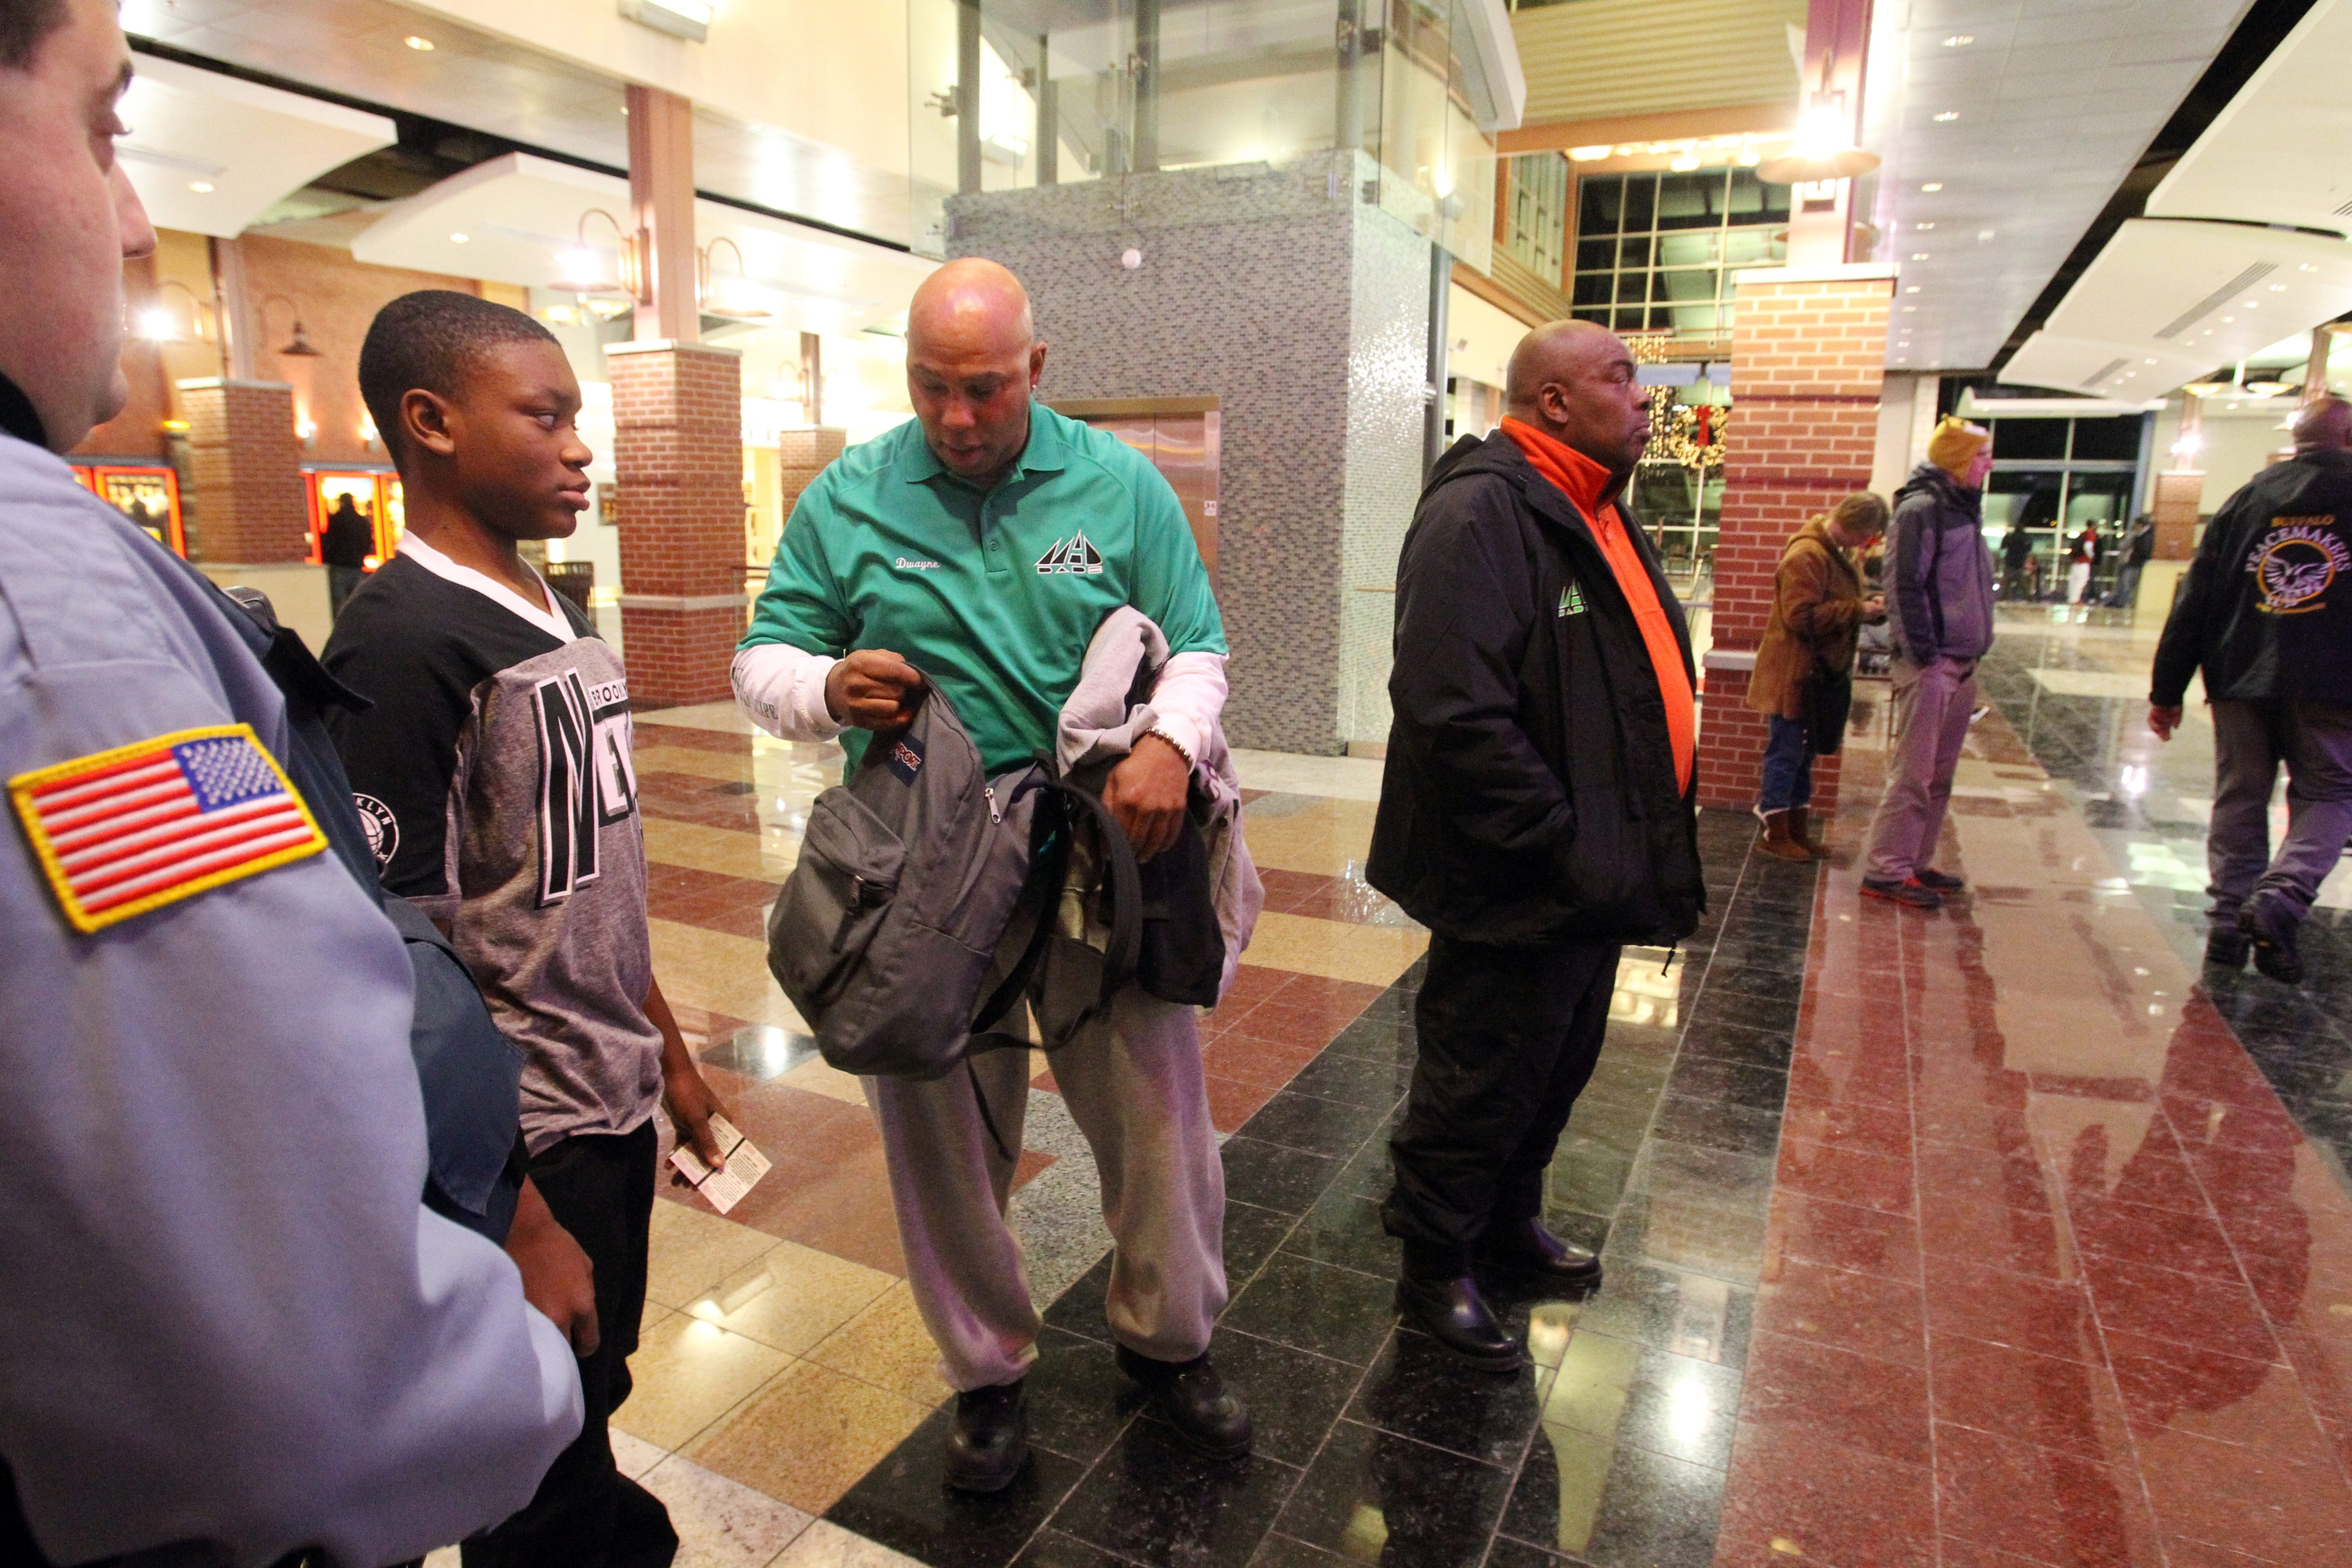 Dwayne Ferguson (green shirt) of MADDADS and the Rev. D.L. Young (in red shirt) talk to kids and inspect  their bags outside the Walden Galleria cinemas in Cheektowaga on Jan. 3, 2014.